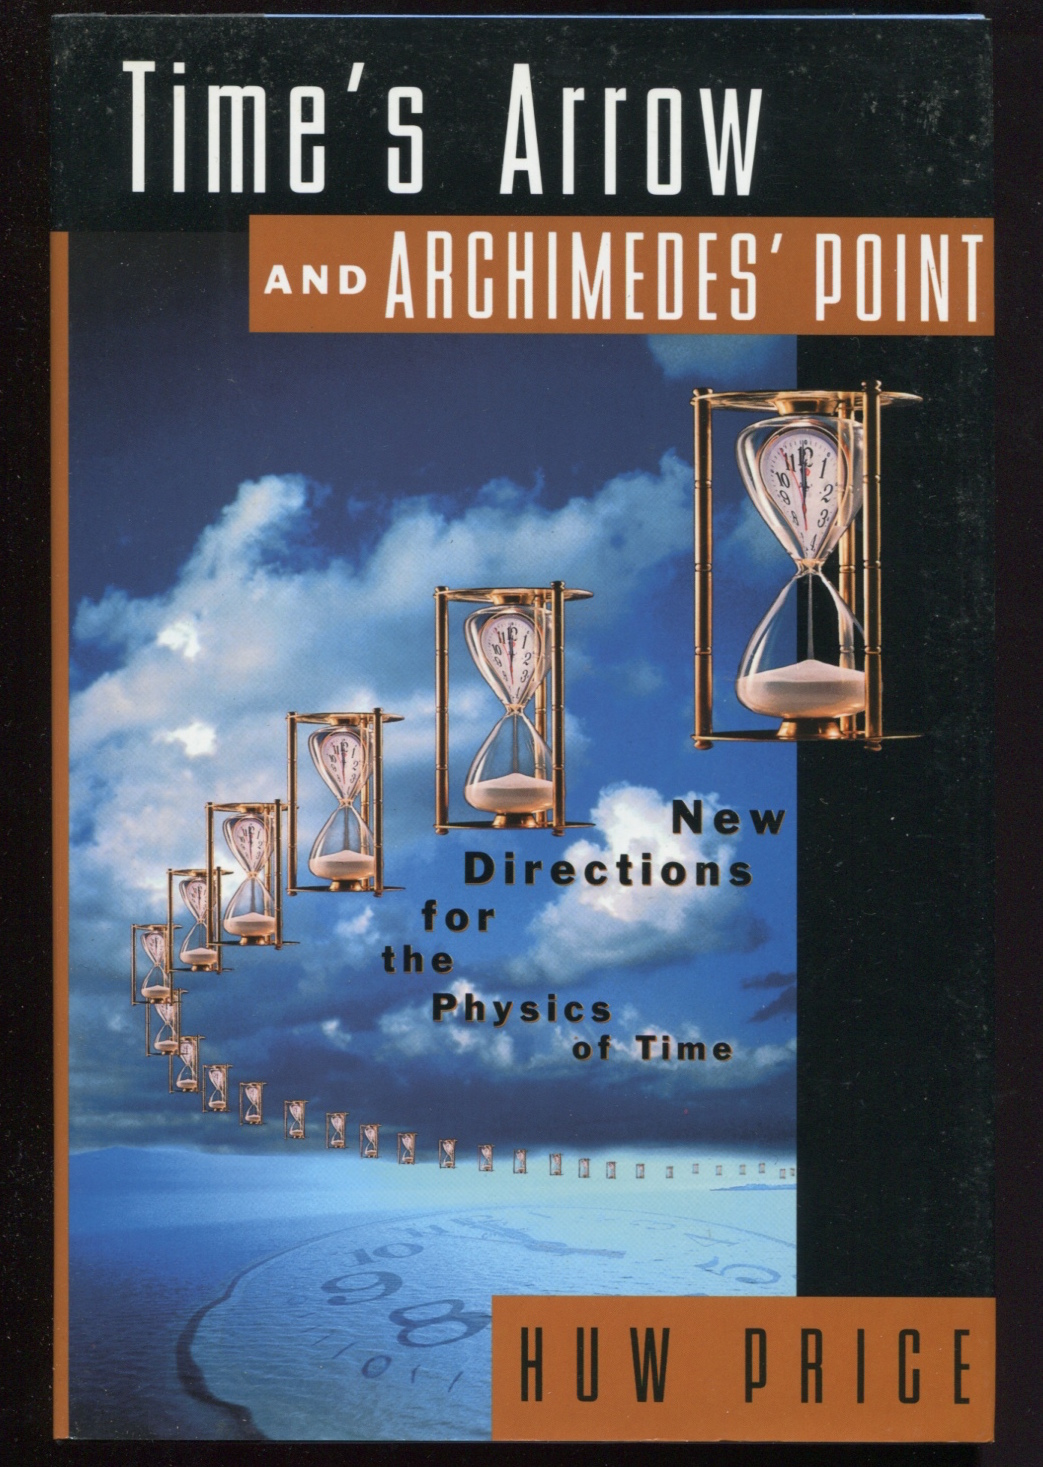 Time's Arrow & Archimedes' Point. New Directions for the Physics of Time.